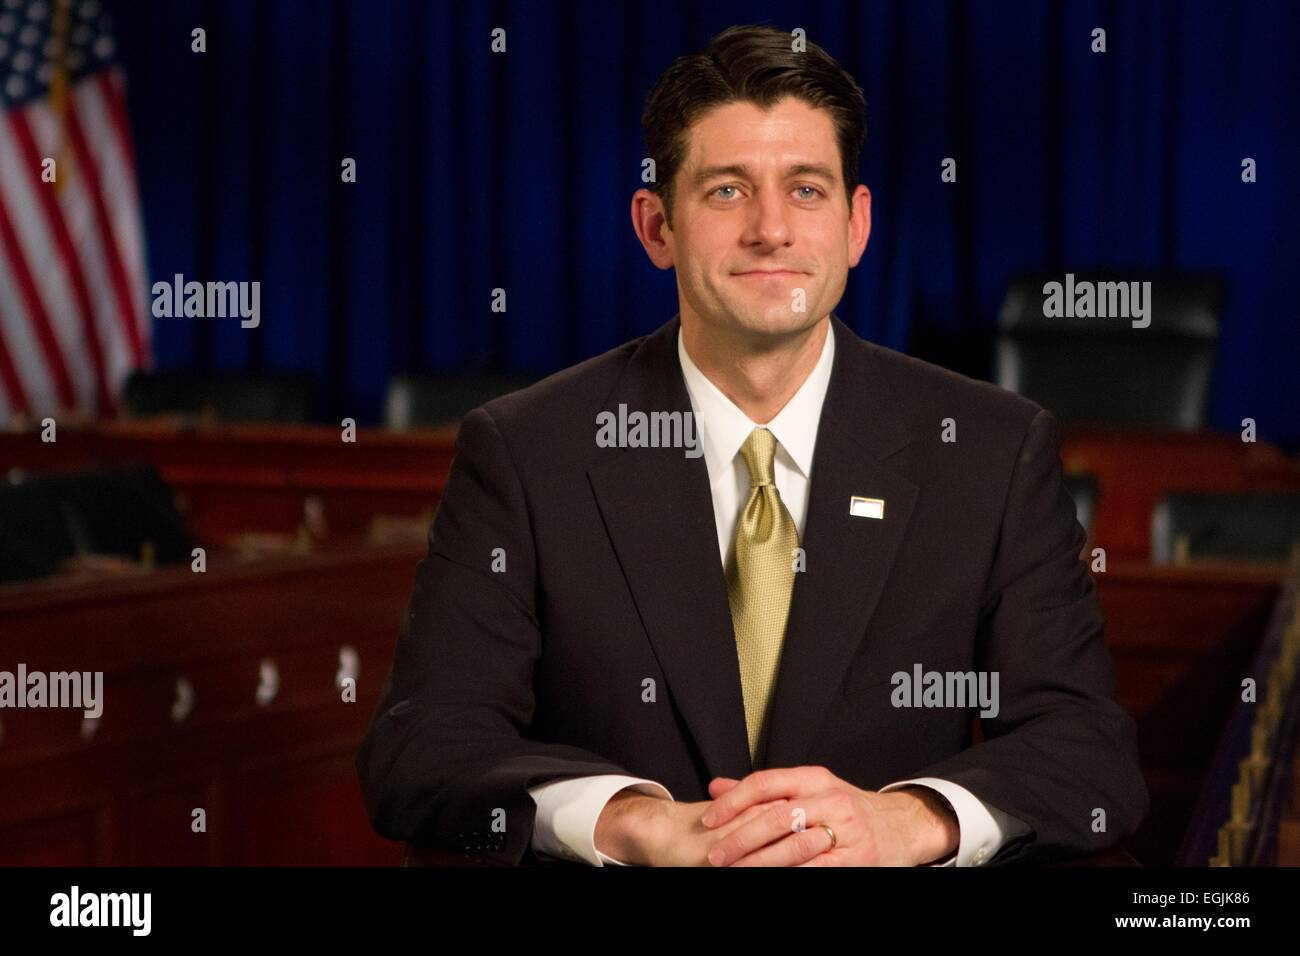 US Rep. Paul Ryan during the Republican response to President Barack Obama following the State of the Union address - Stock Image